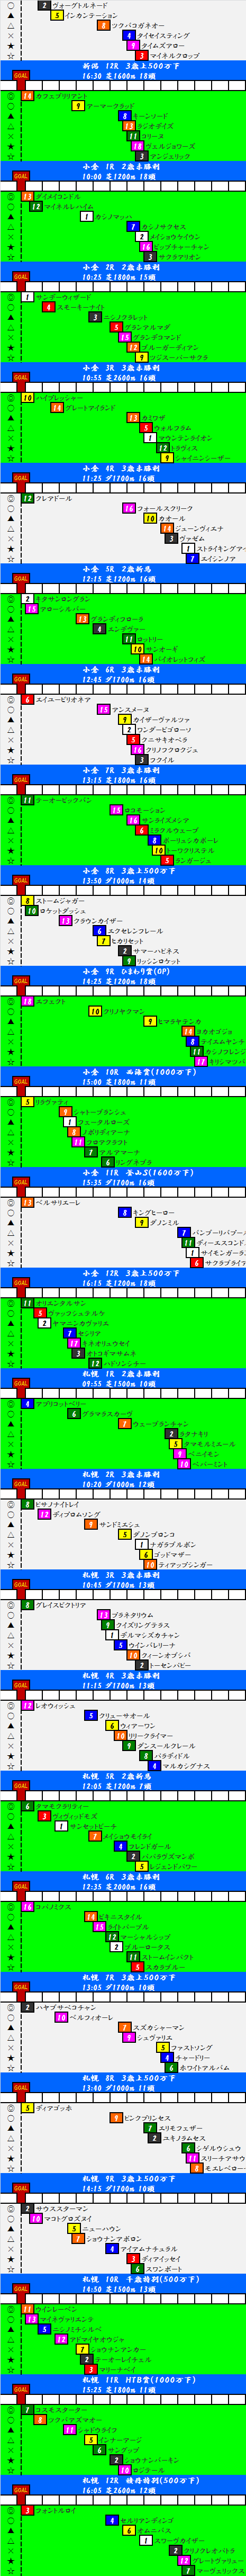 201408302.png